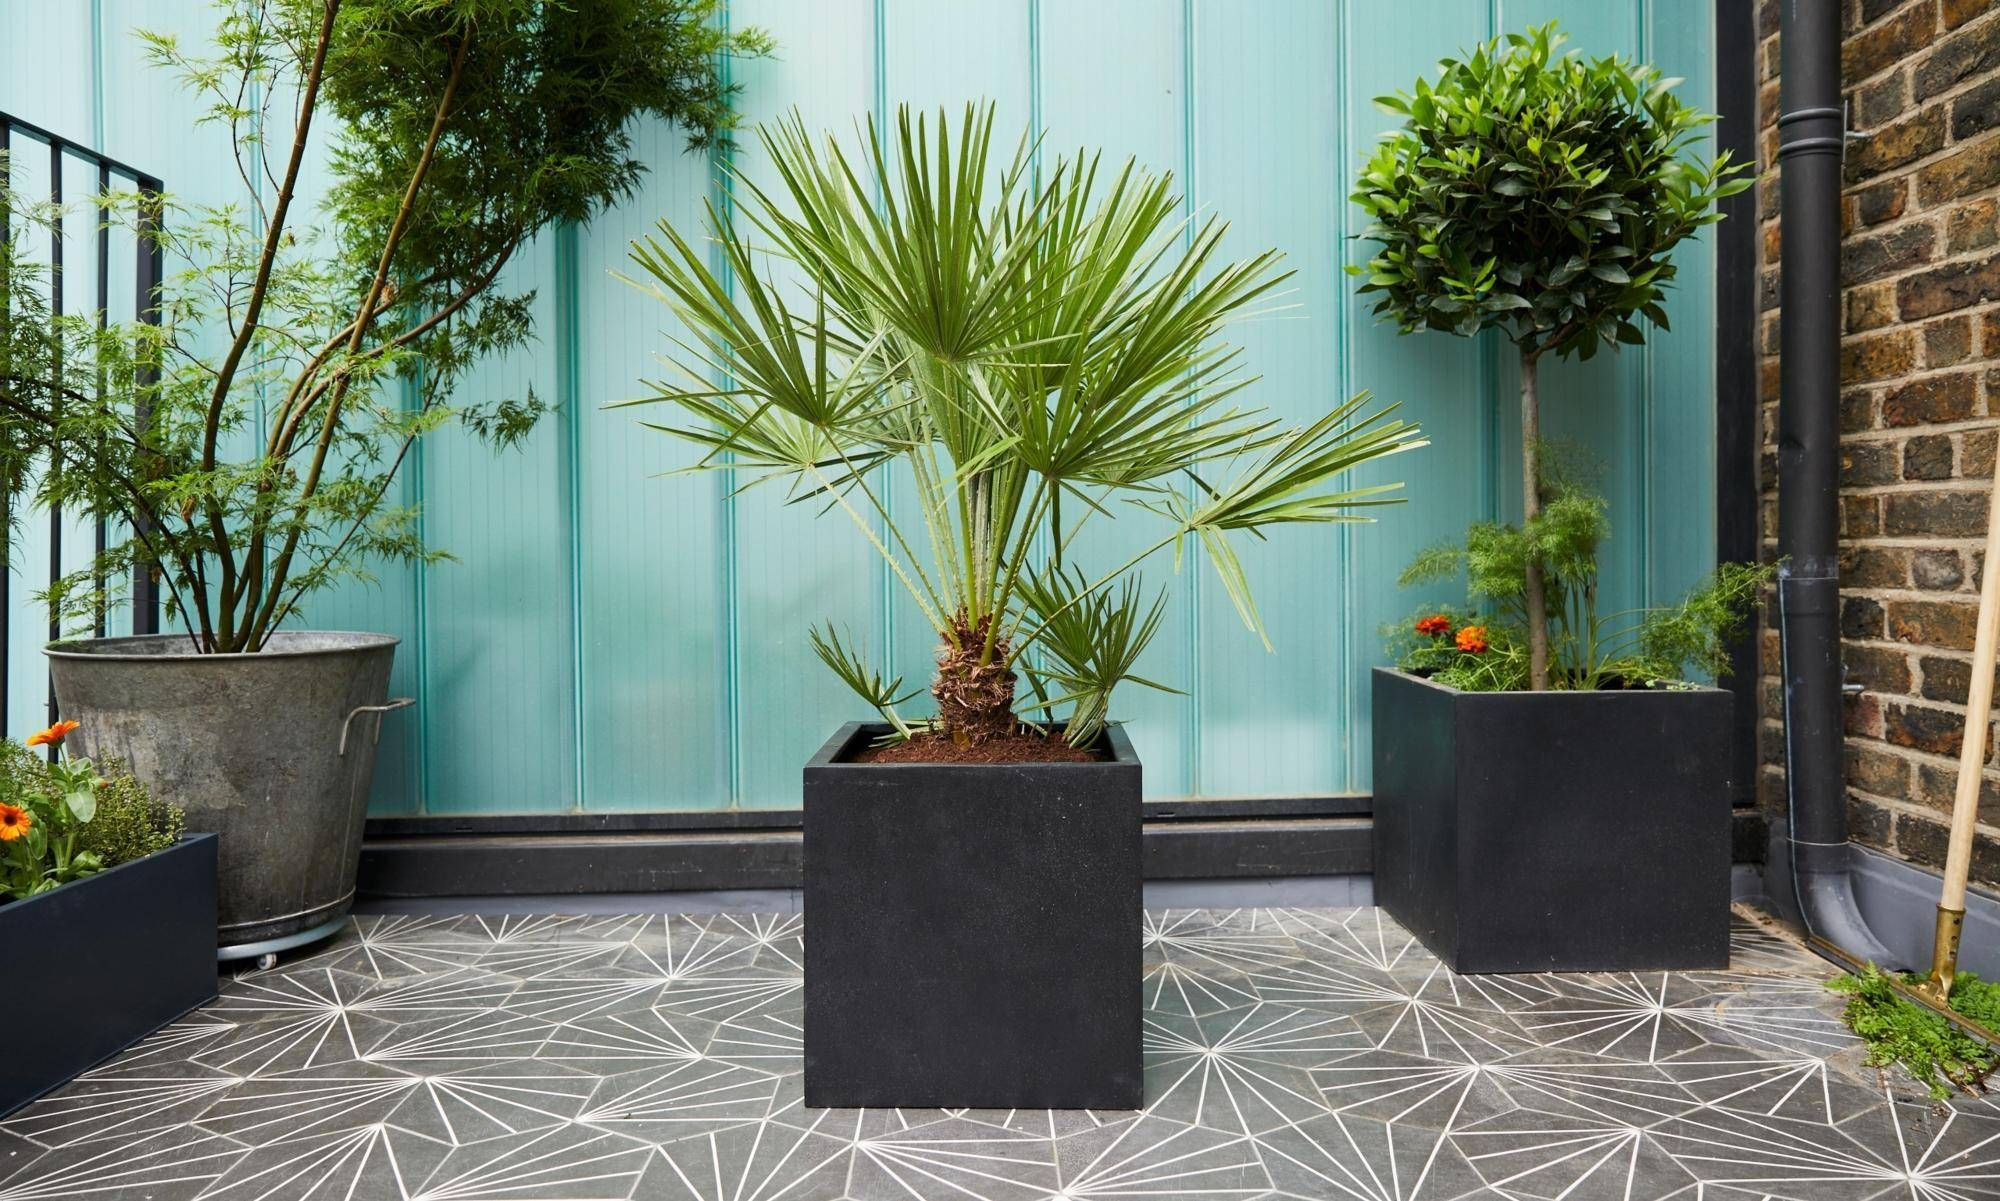 The best outdoor plants to buy when starting your city